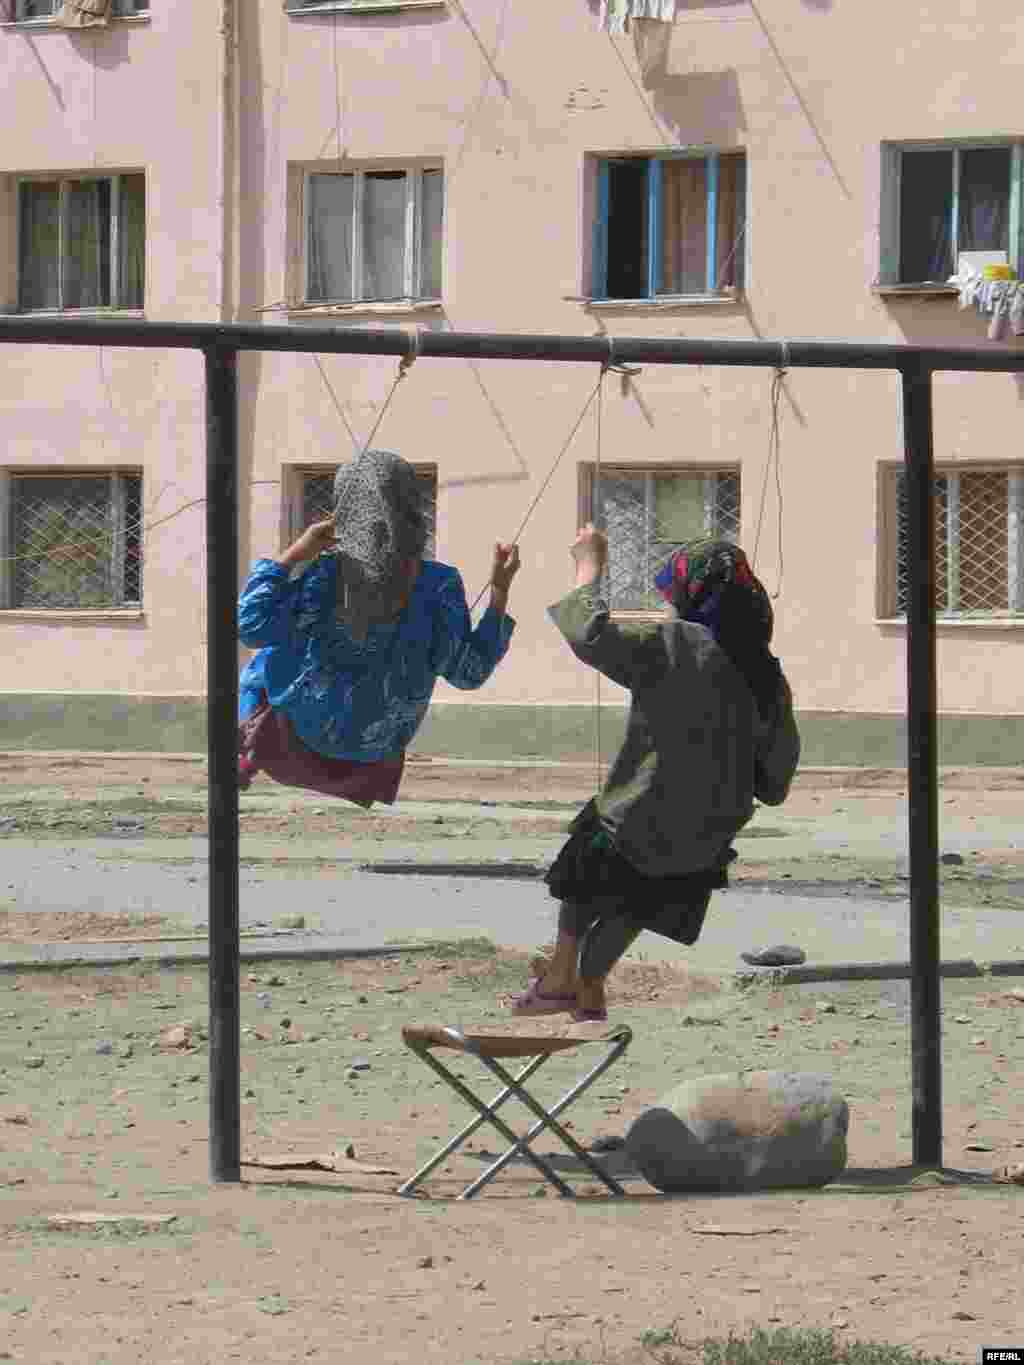 Playtime in a poor area of the capital, Dushanbe.